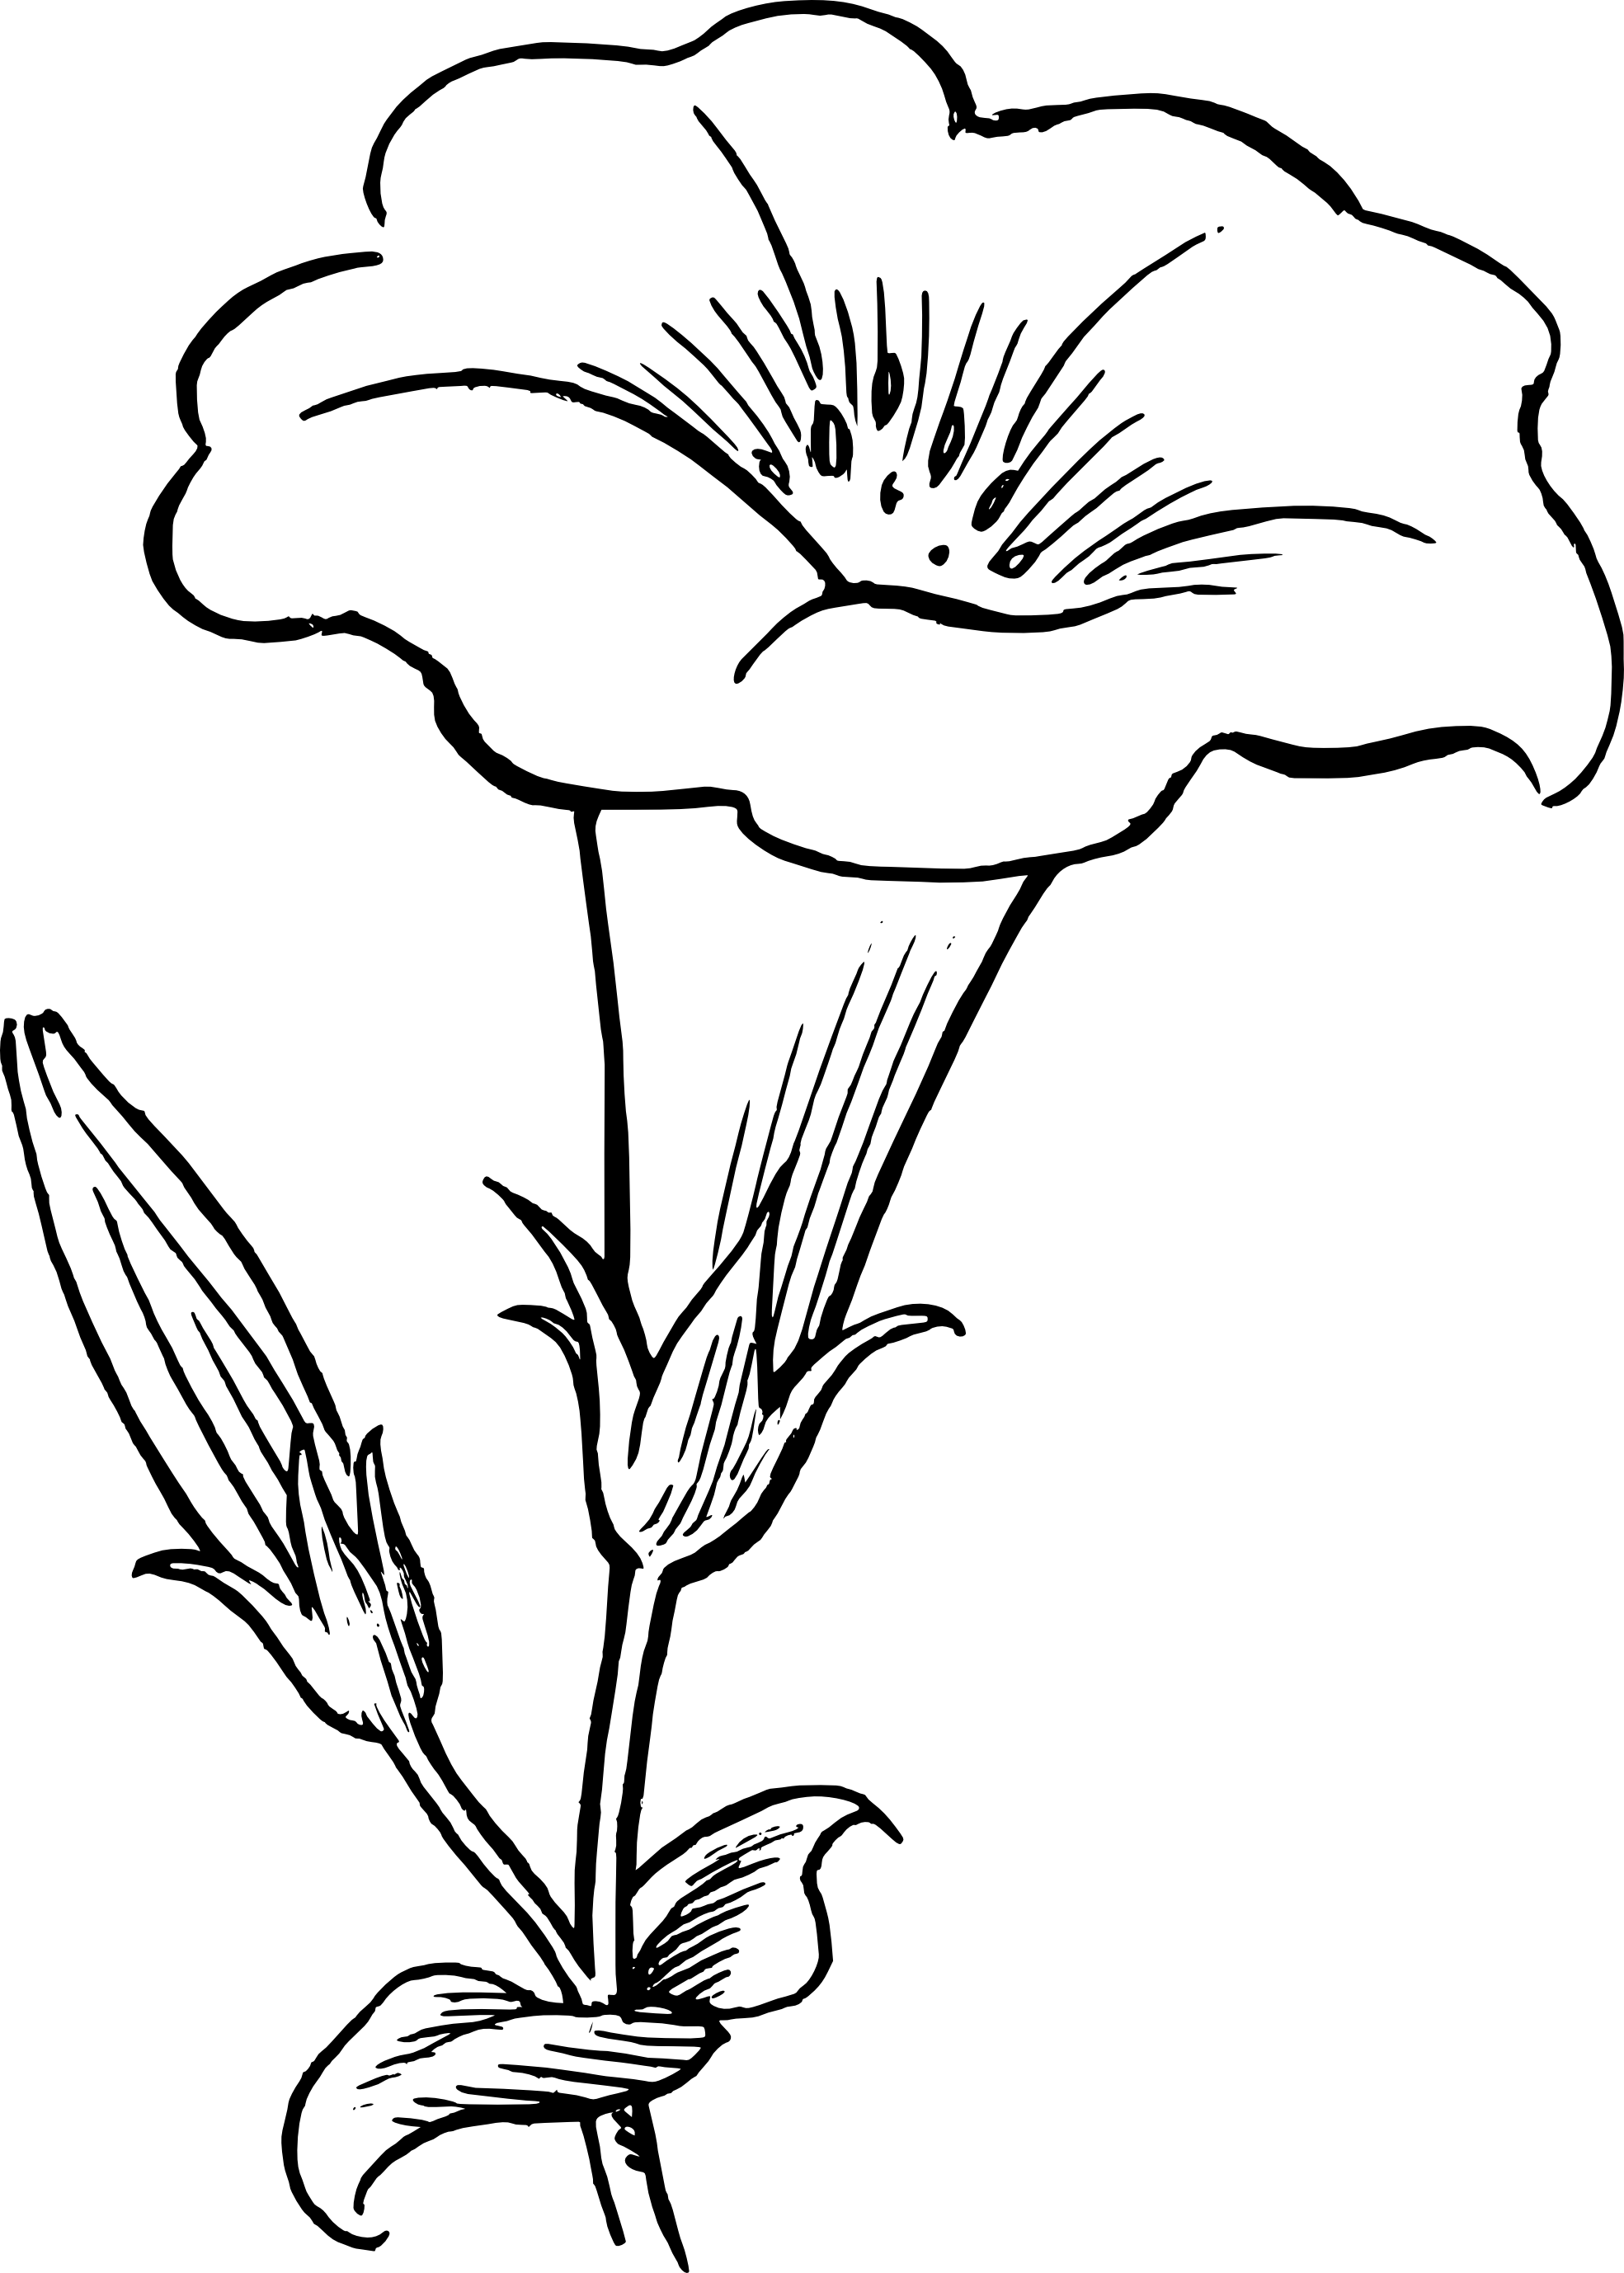 Line Art Flowers Images : Drawings flower clipart best